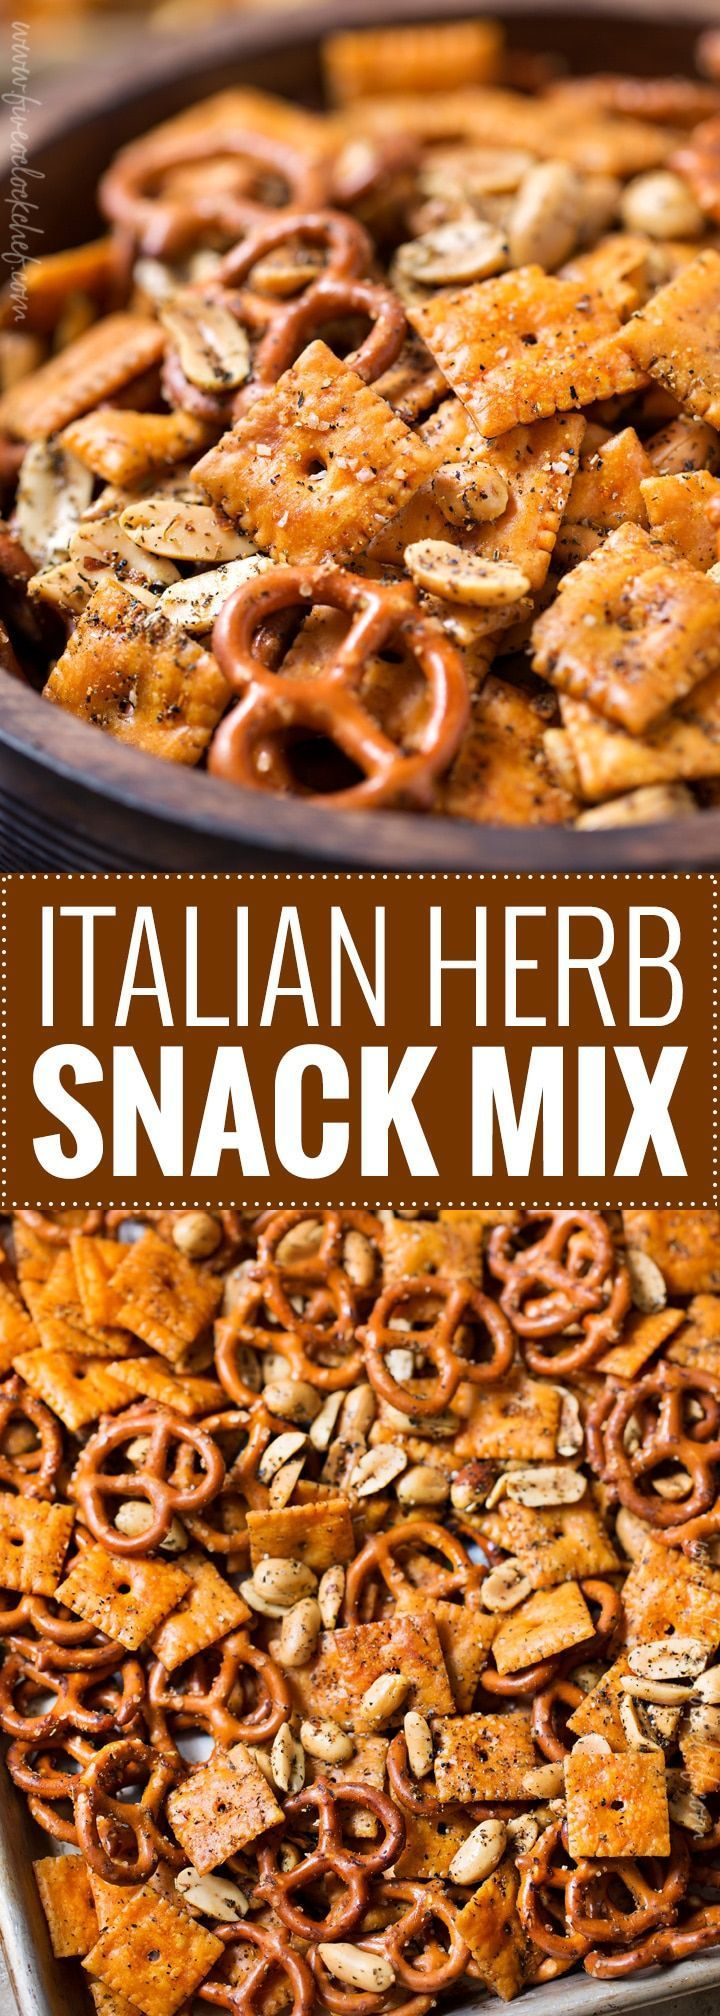 Easy Italian Herb Snack Mix   Baked to buttery perfection, this Italian herb snack mix is the perfect after school or party snack. No need to eat bagged snacks, homemade is really easy!   https://the5oclockchef.com   #snackmix #snacks, #partyfood #chexmix #italianherb